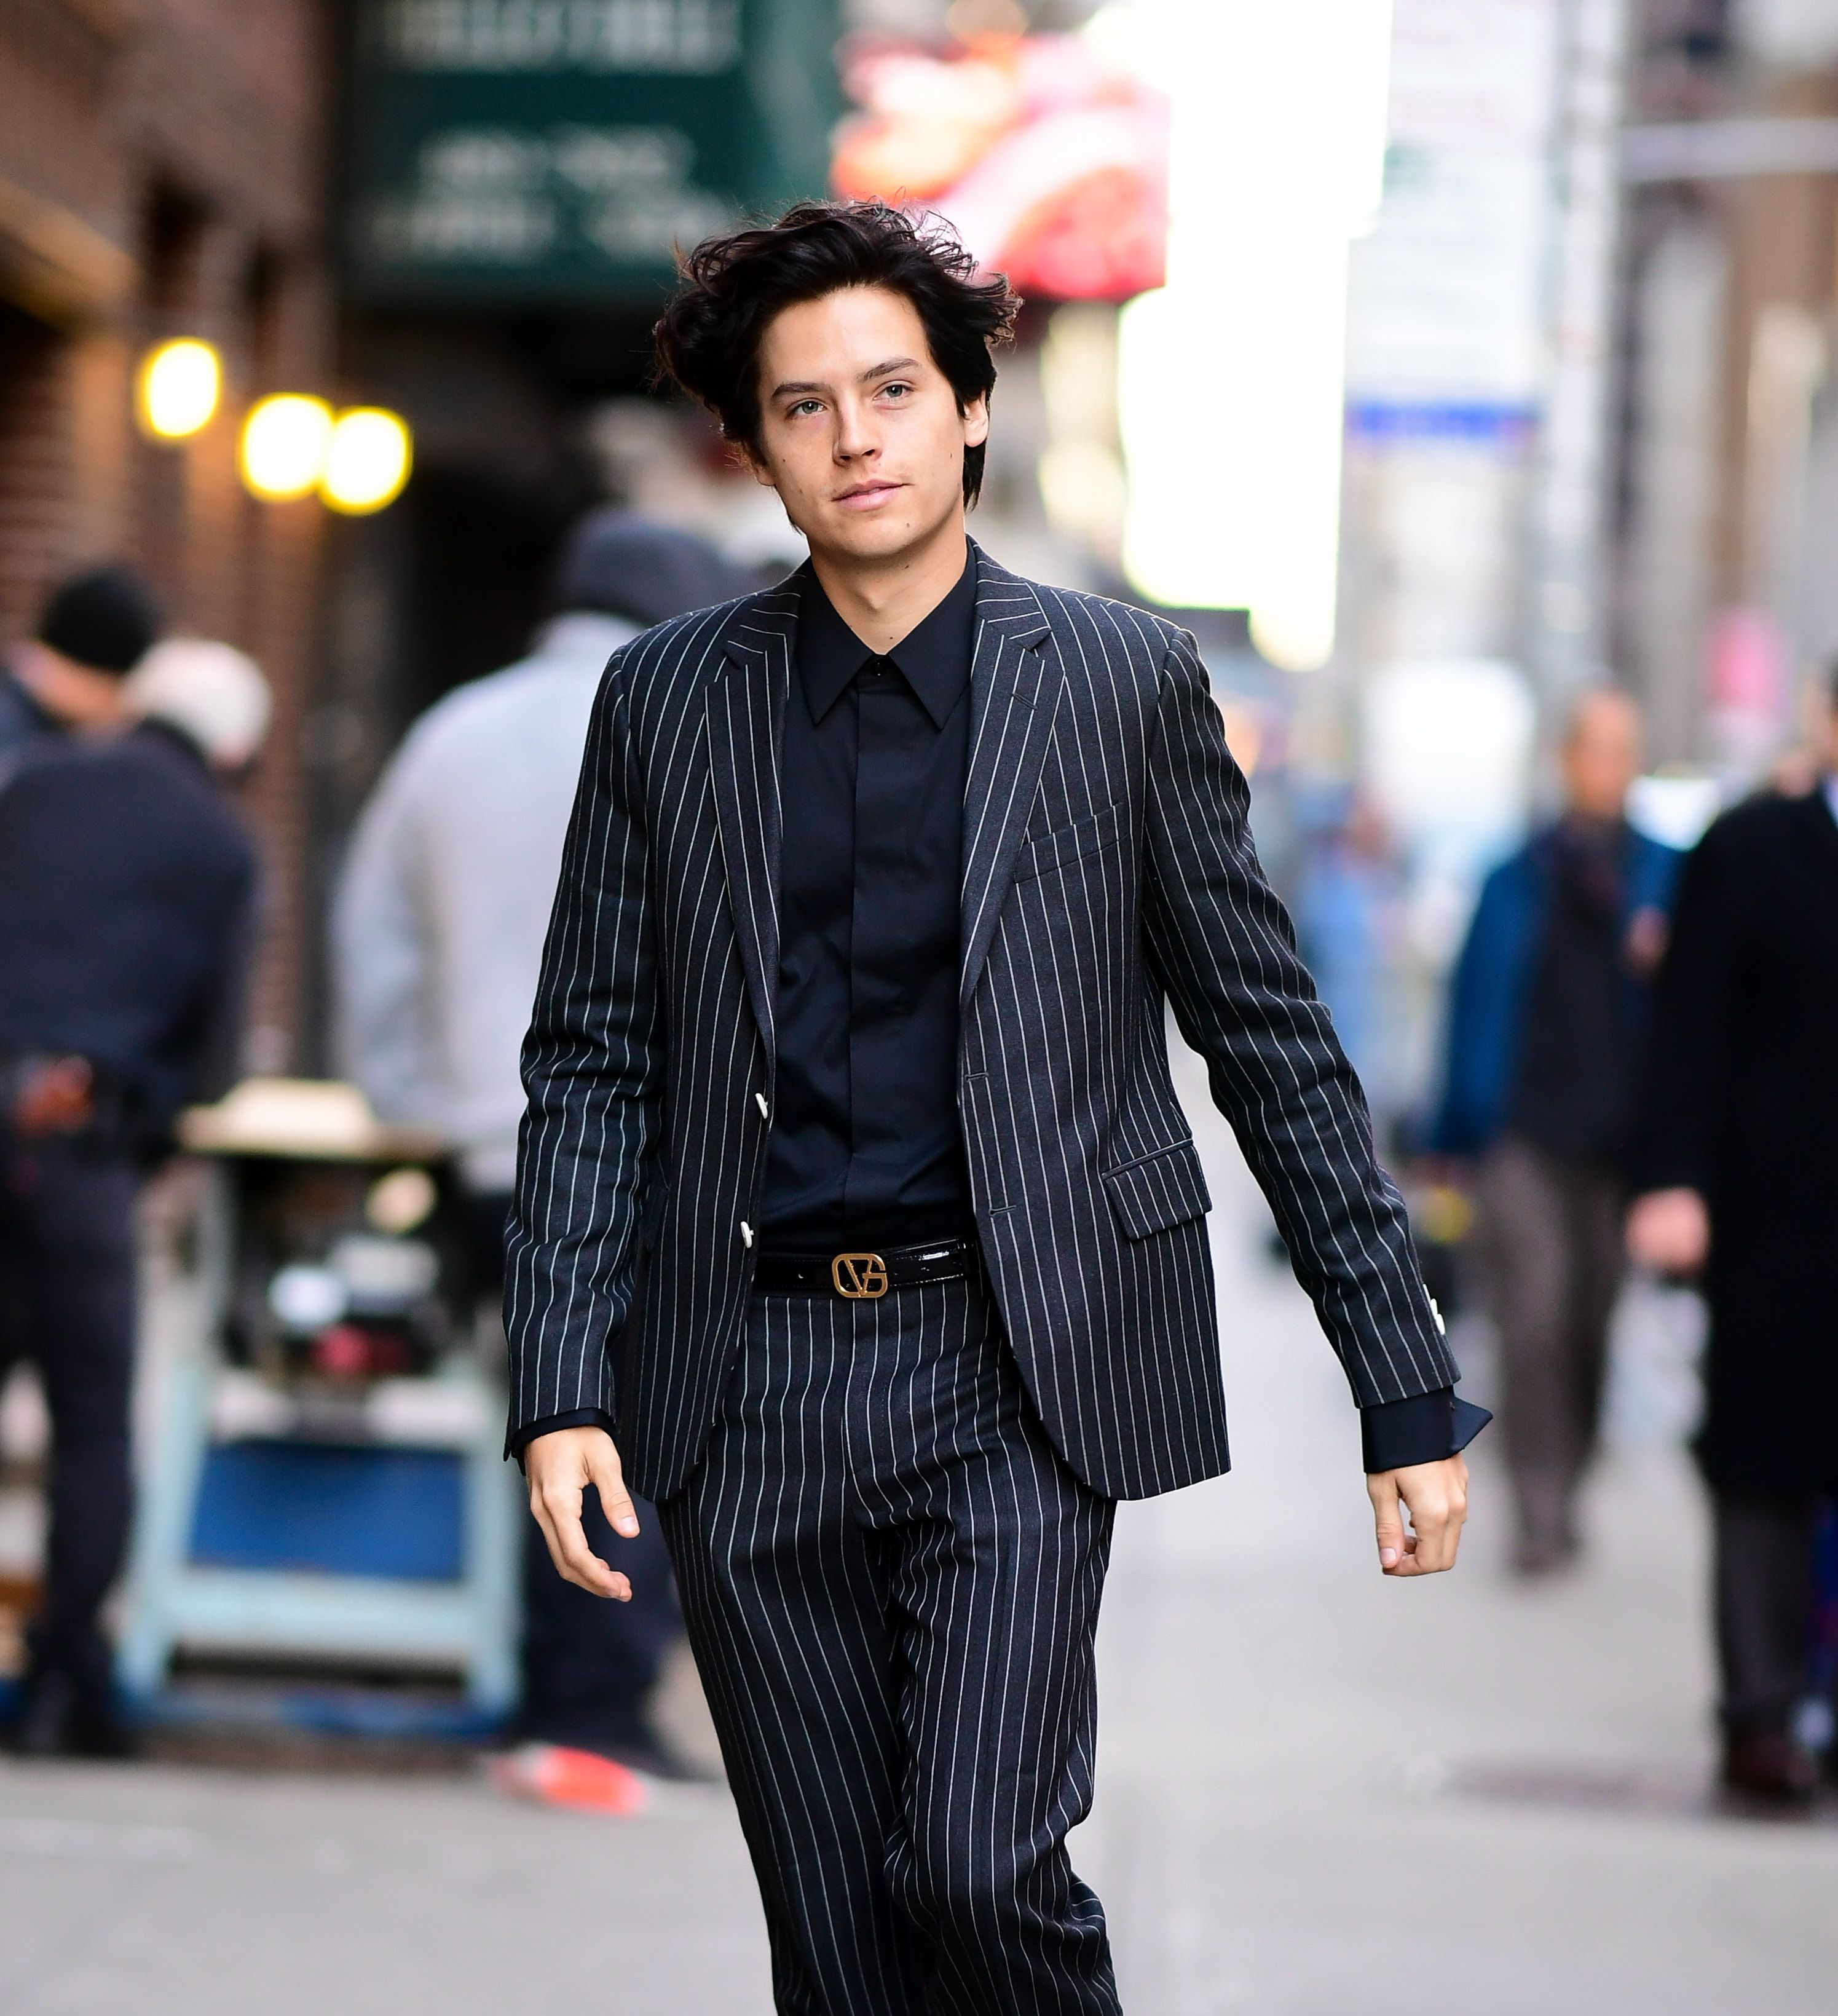 Cole Sprouse Reveals Wall Street Journal Photoshoot